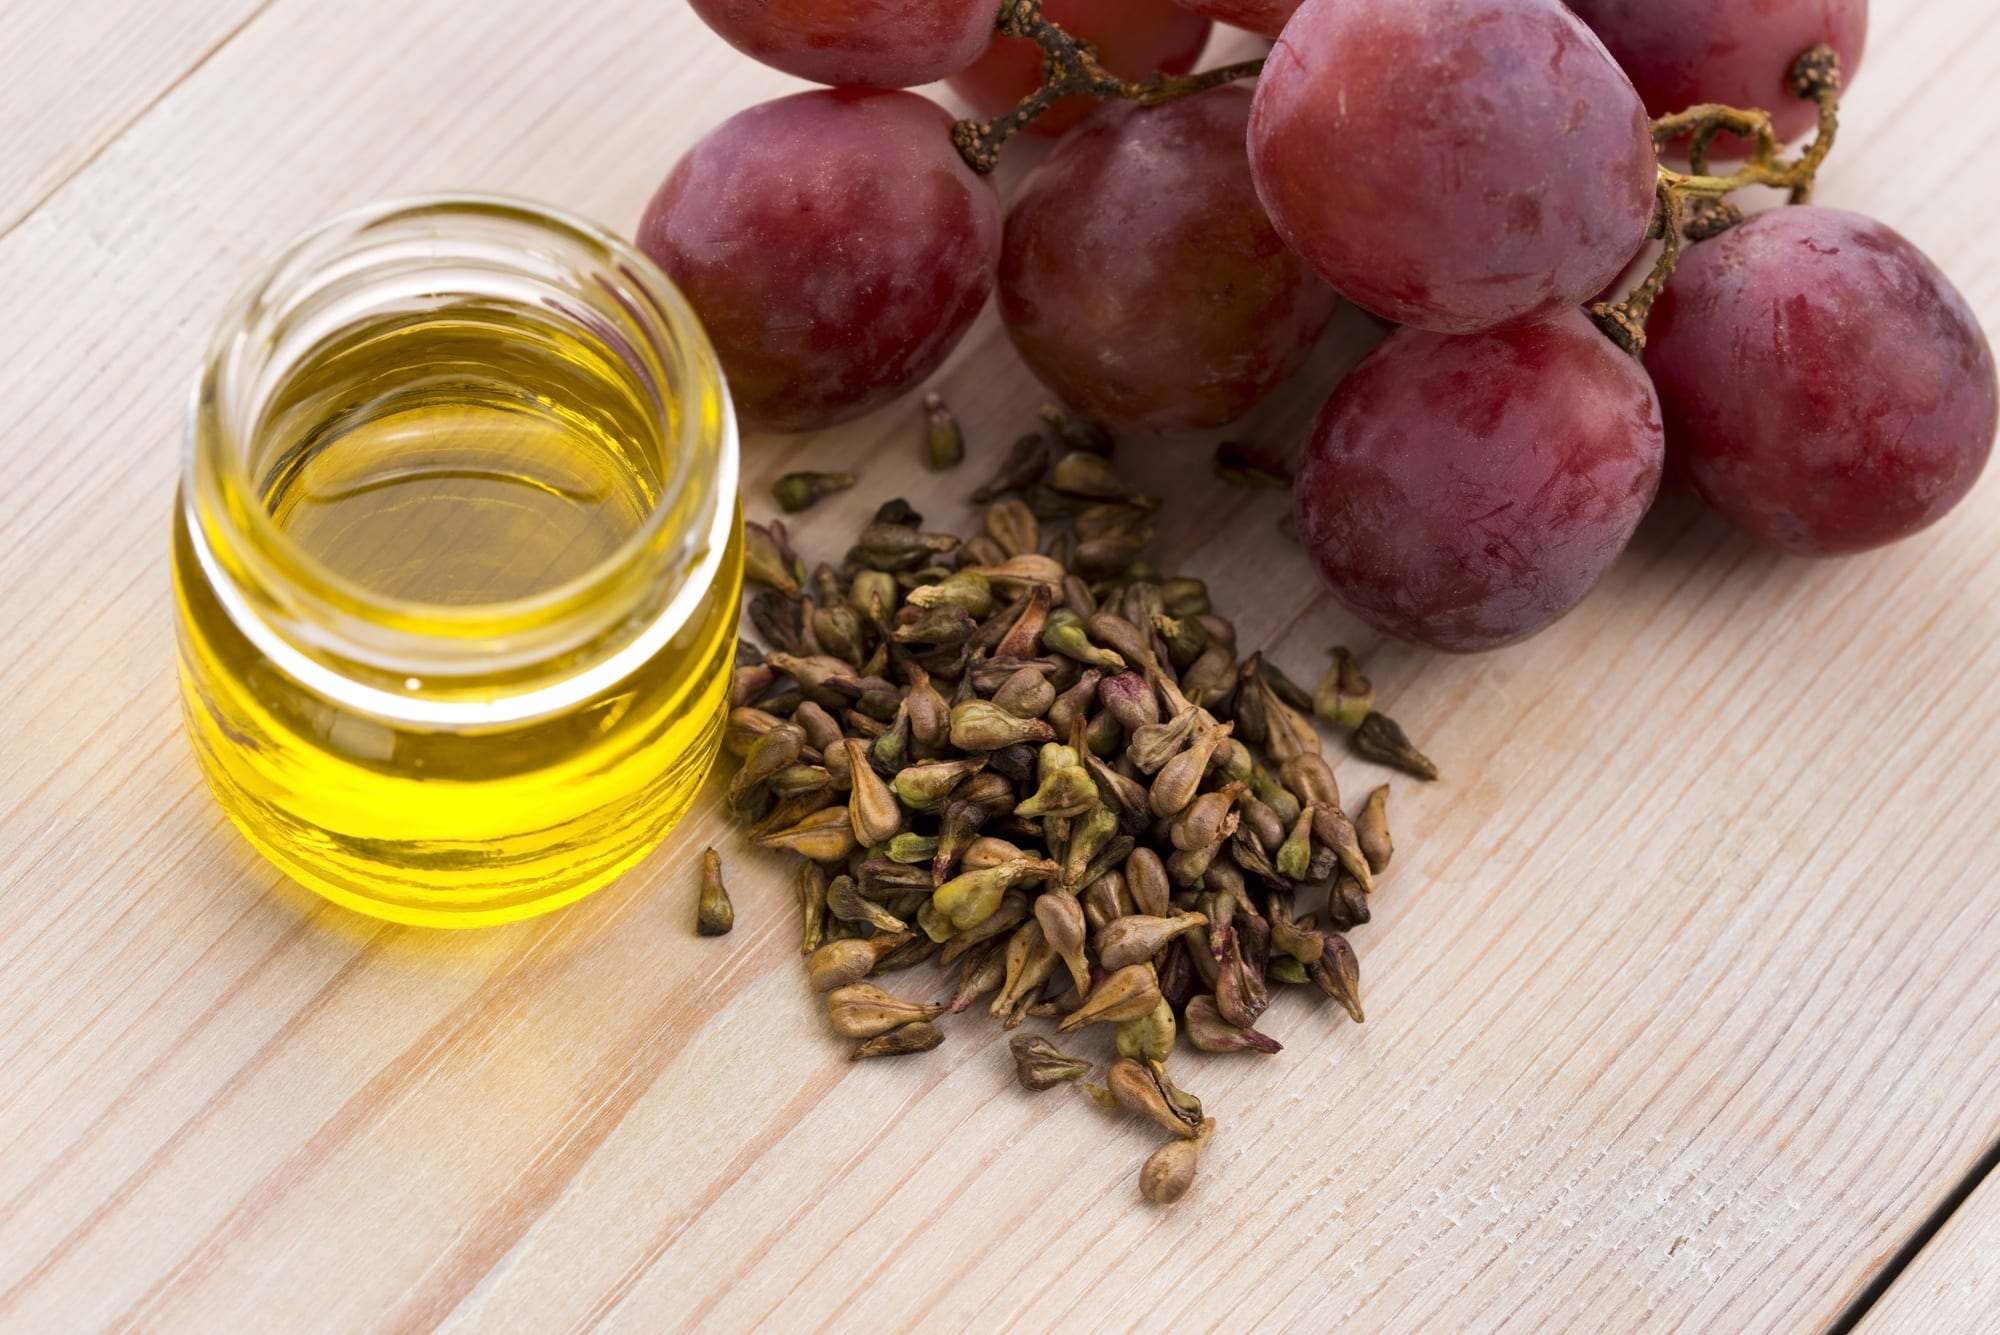 Cooking with grapeseed oil